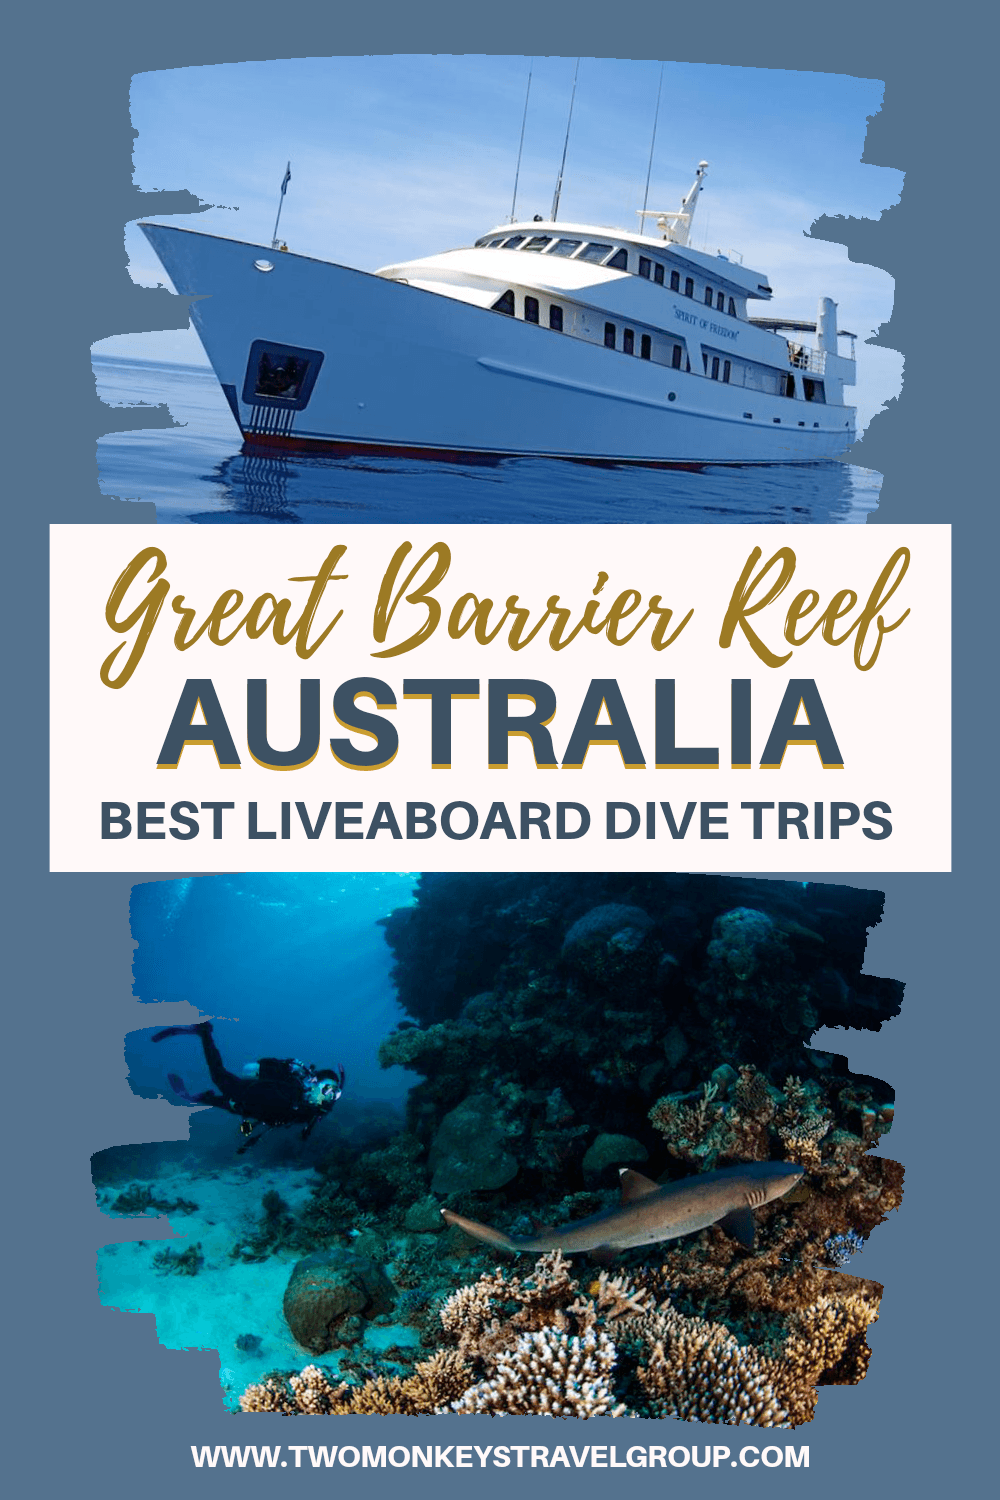 Best Liveaboard Dive Trips at the Great Barrier Reef in Australia